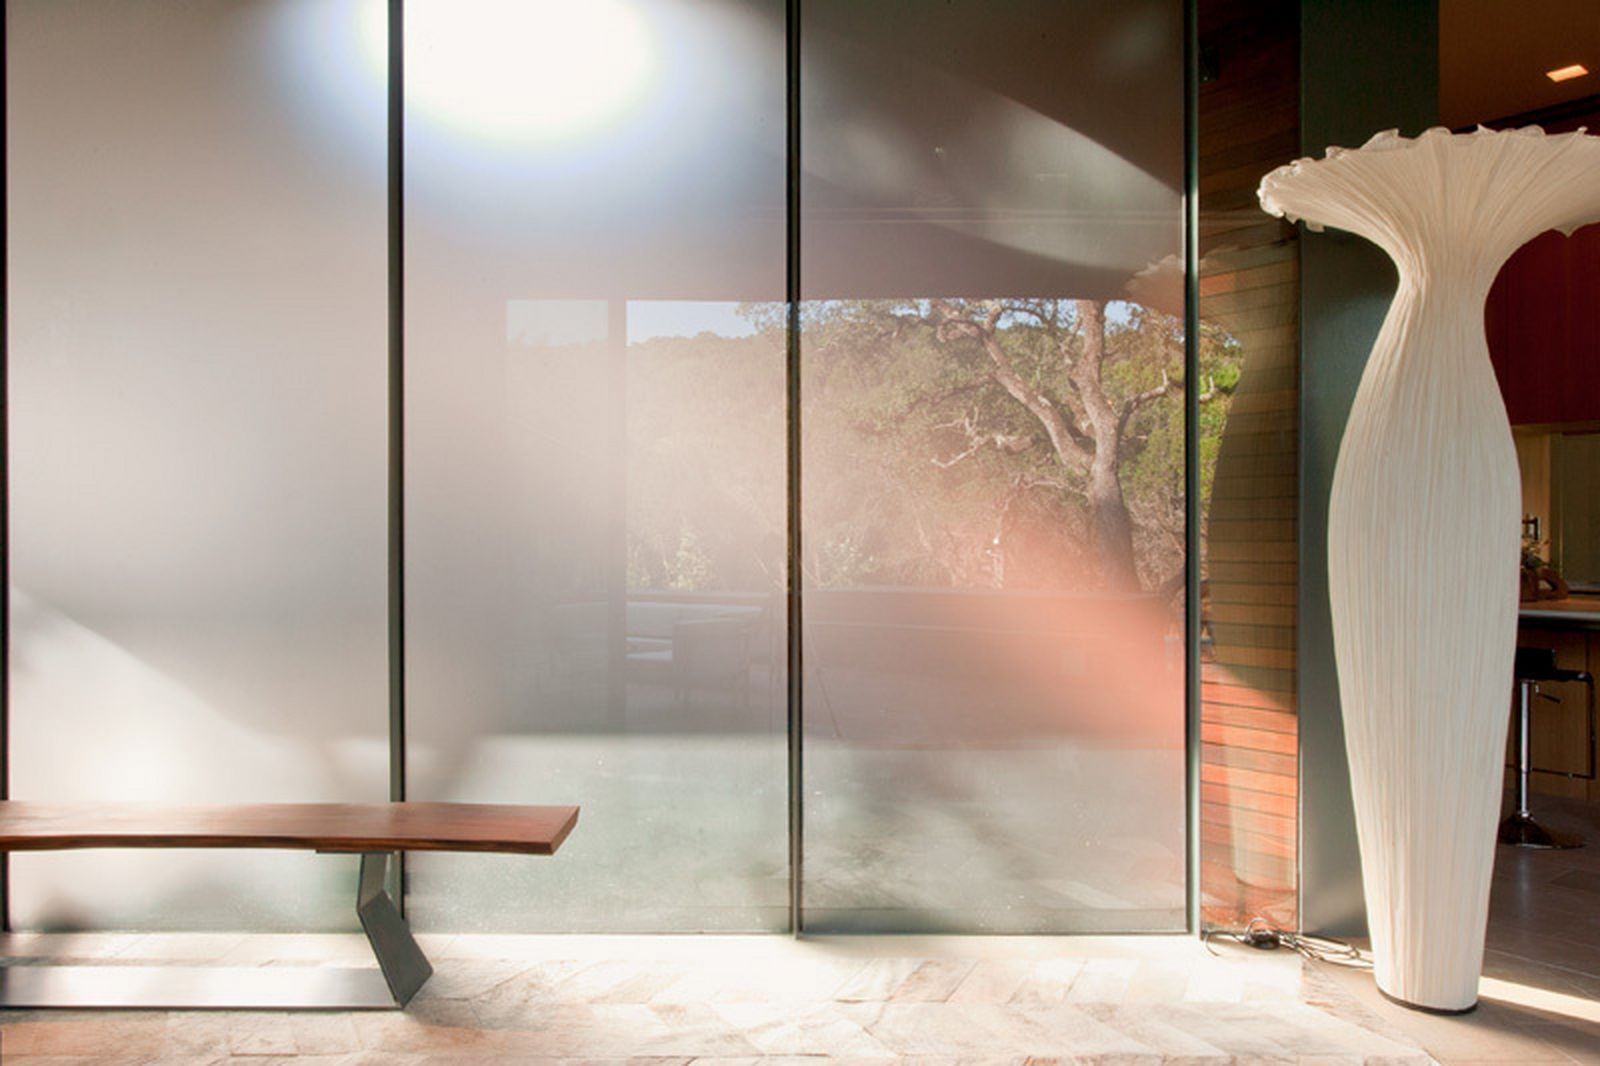 Frosted Glass Panels Pros The Semi Transparent Material Allows For Visual P